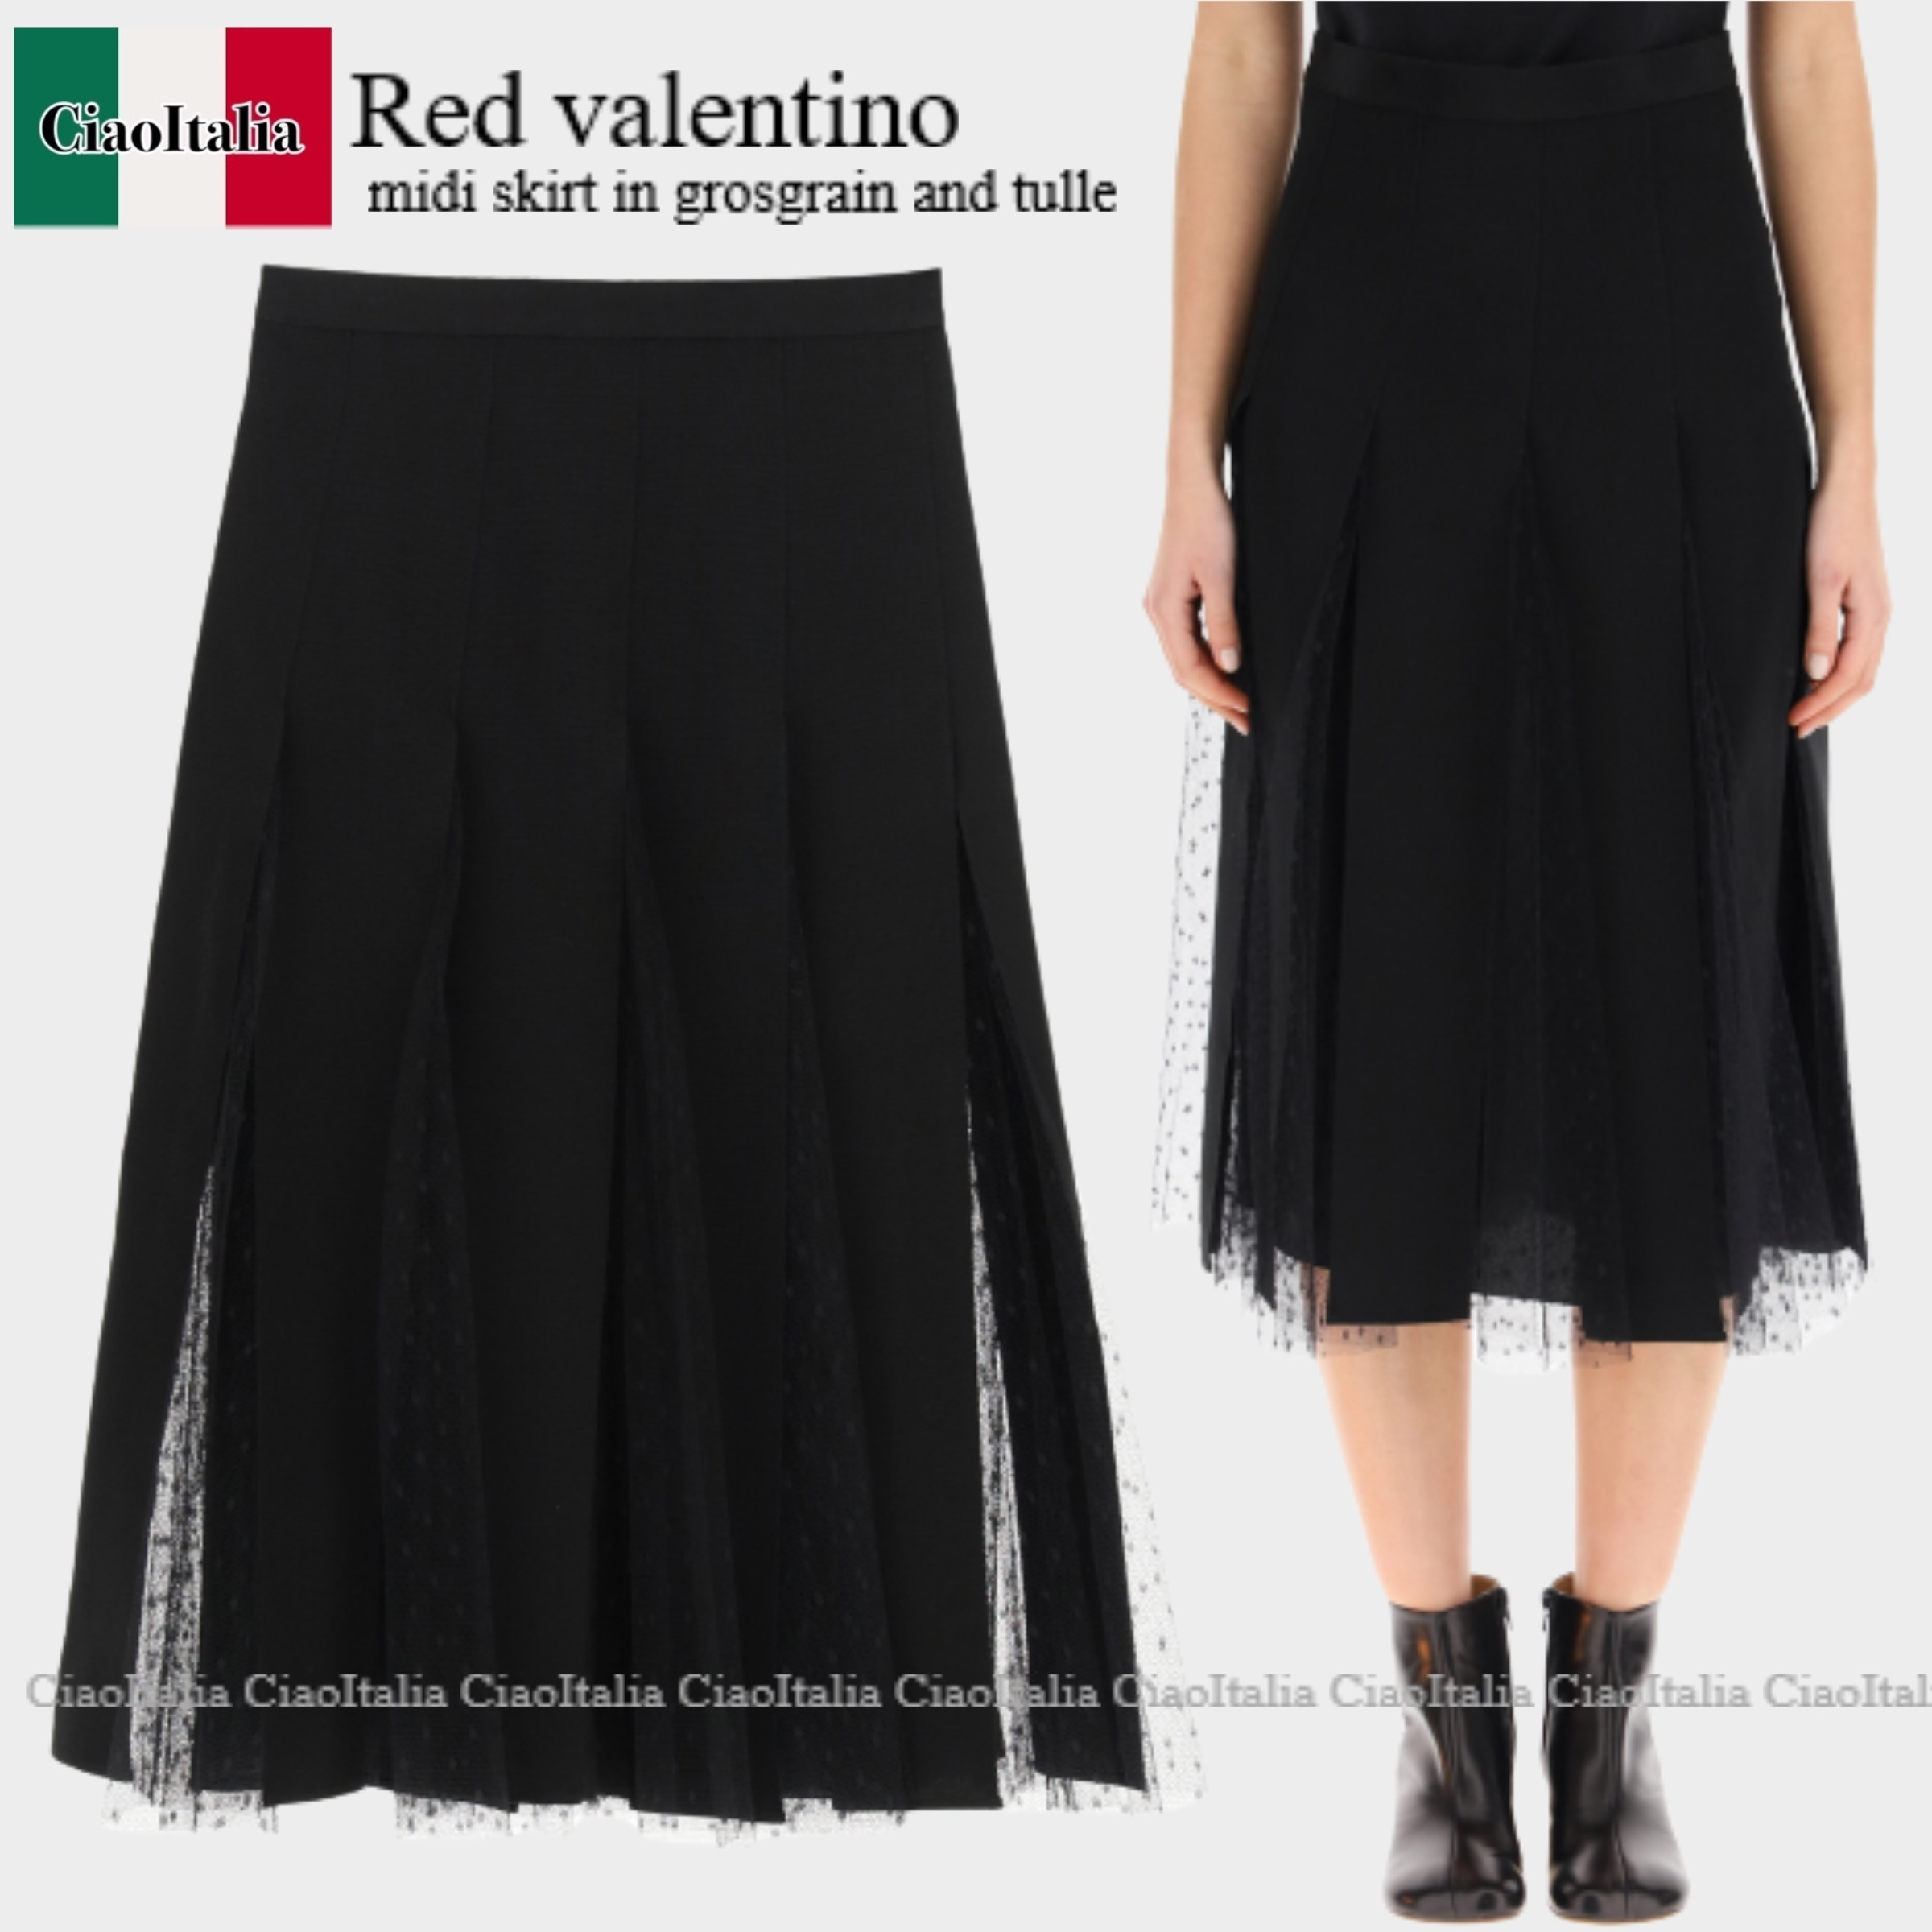 Red valentino midi skirt in grosgrain and tulle (RED VALENTINO/スカート) RED VALENTINO MIDI SKIRT IN GROSGRAIN AN  VR3RAF701GK  VR3RAF701GK 0NO